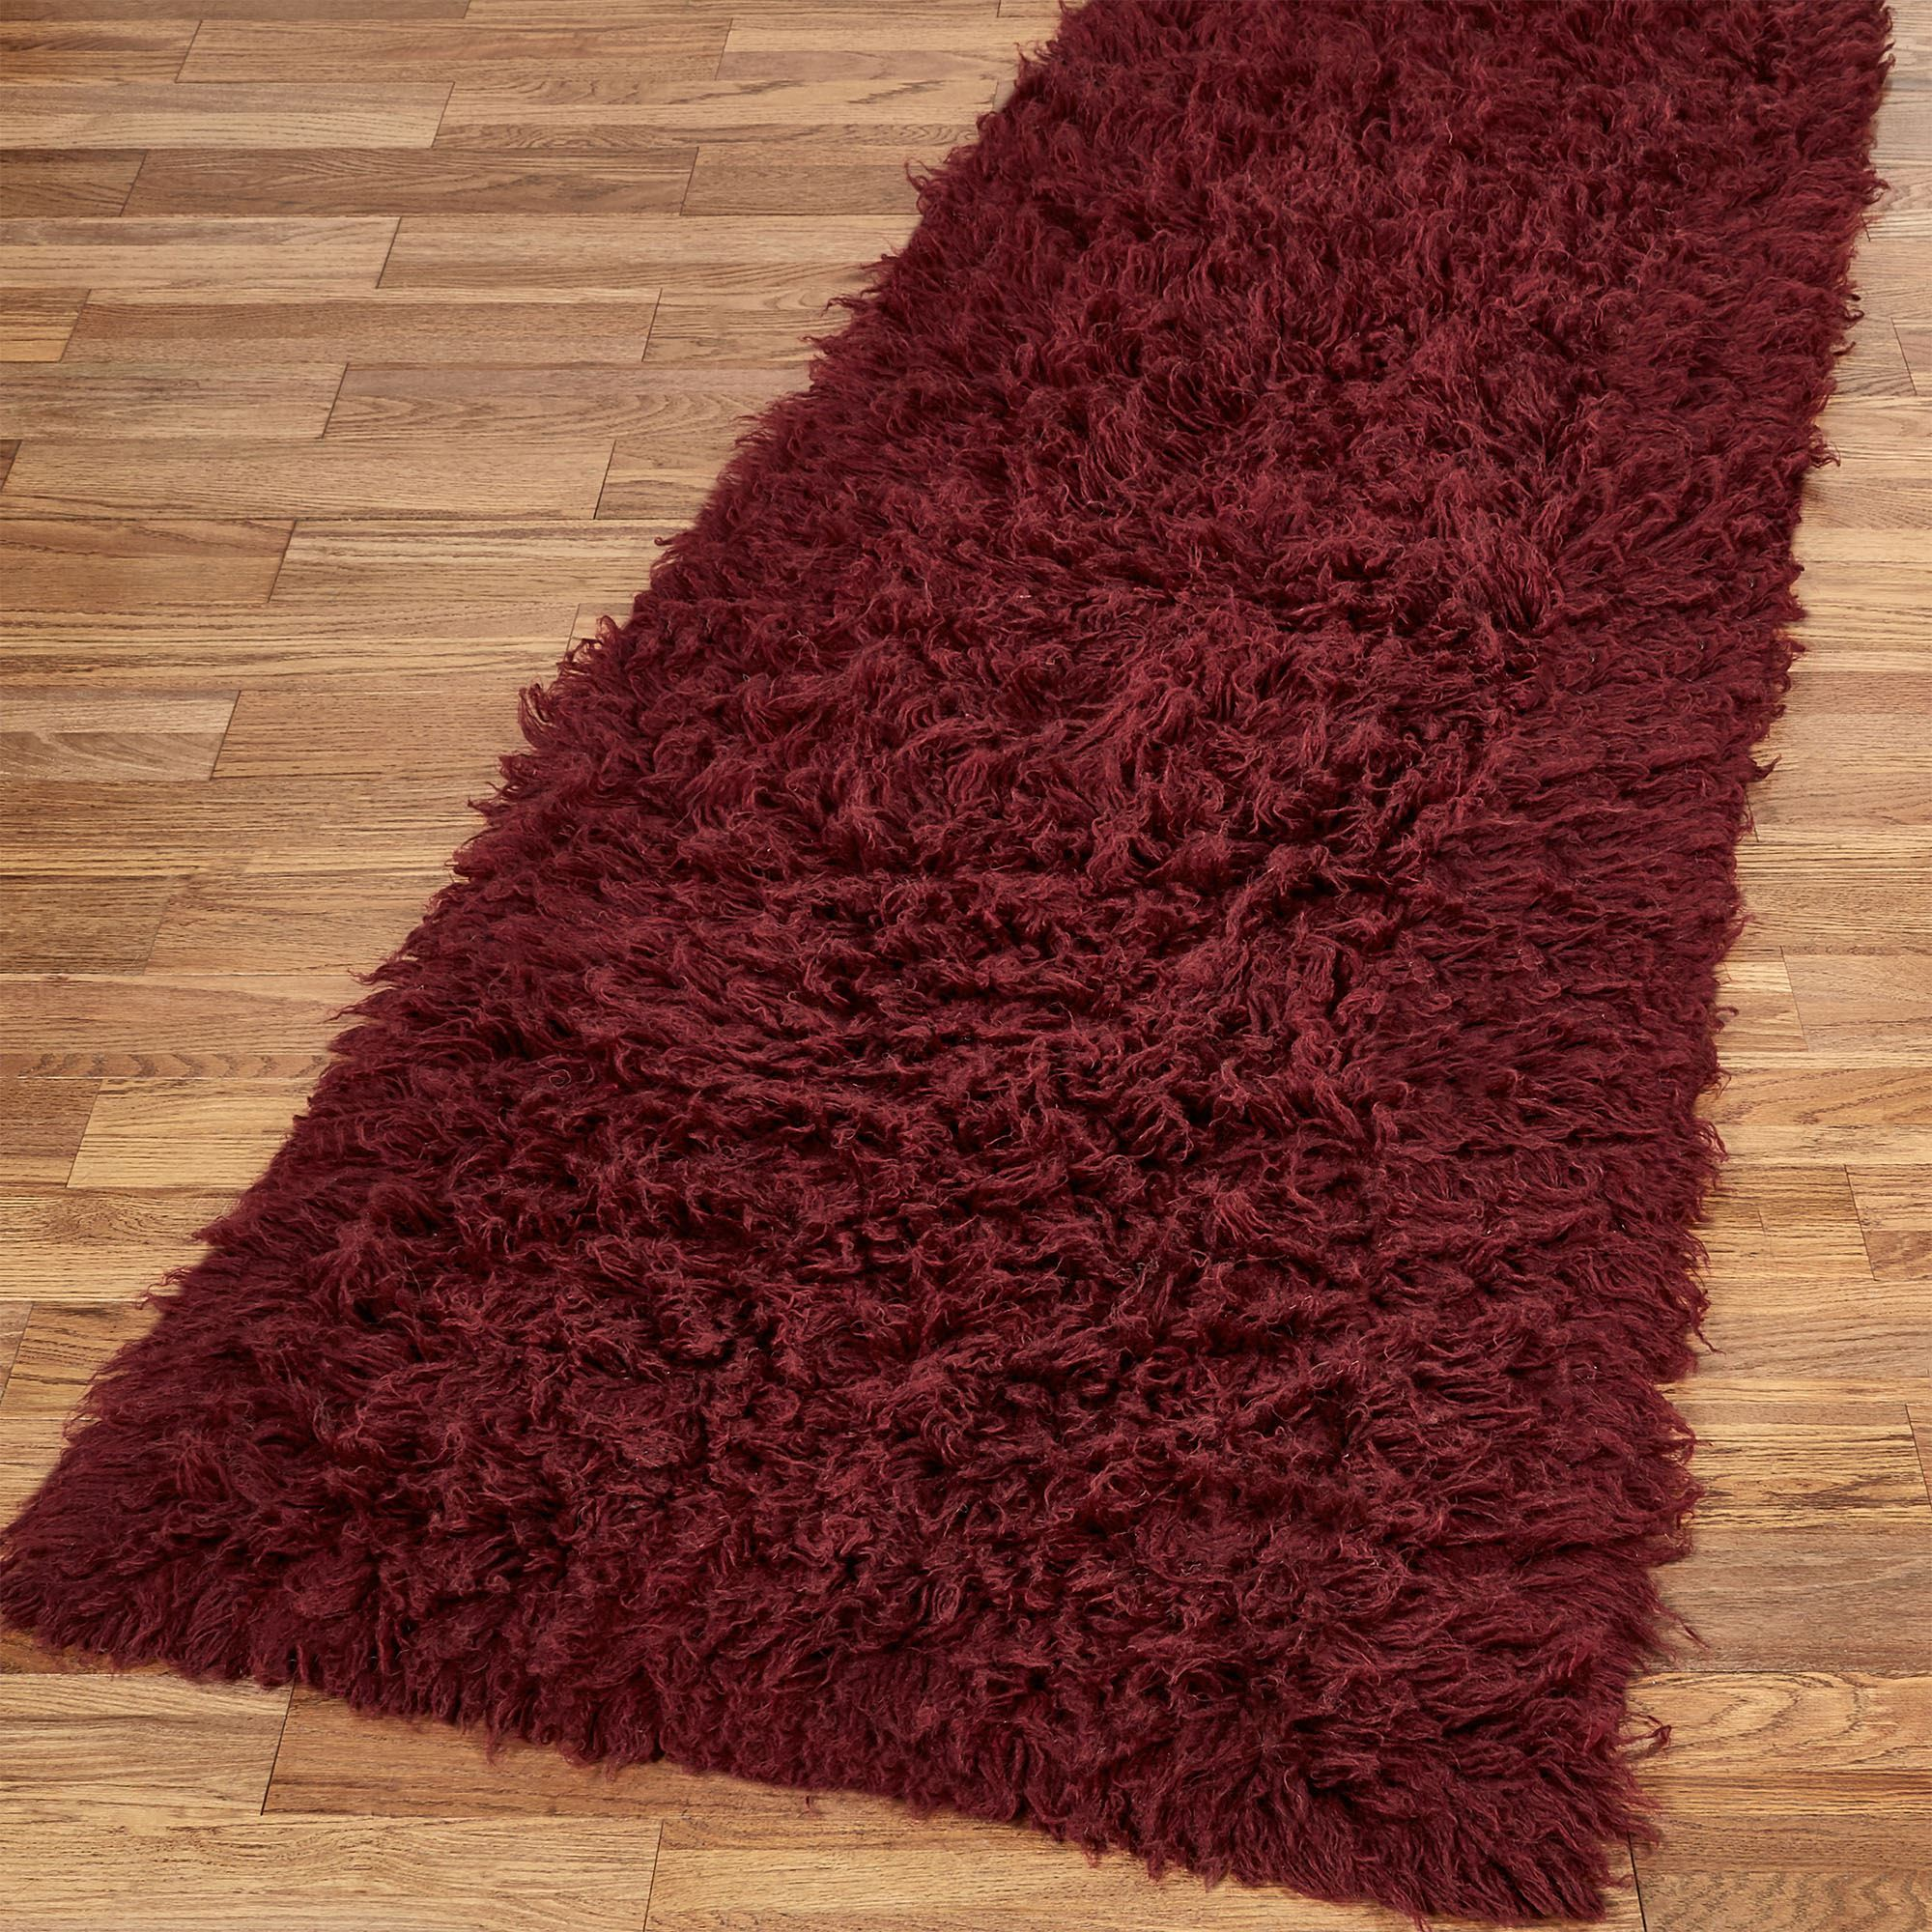 Burgundy Flokati Wool Shag Area Rugs